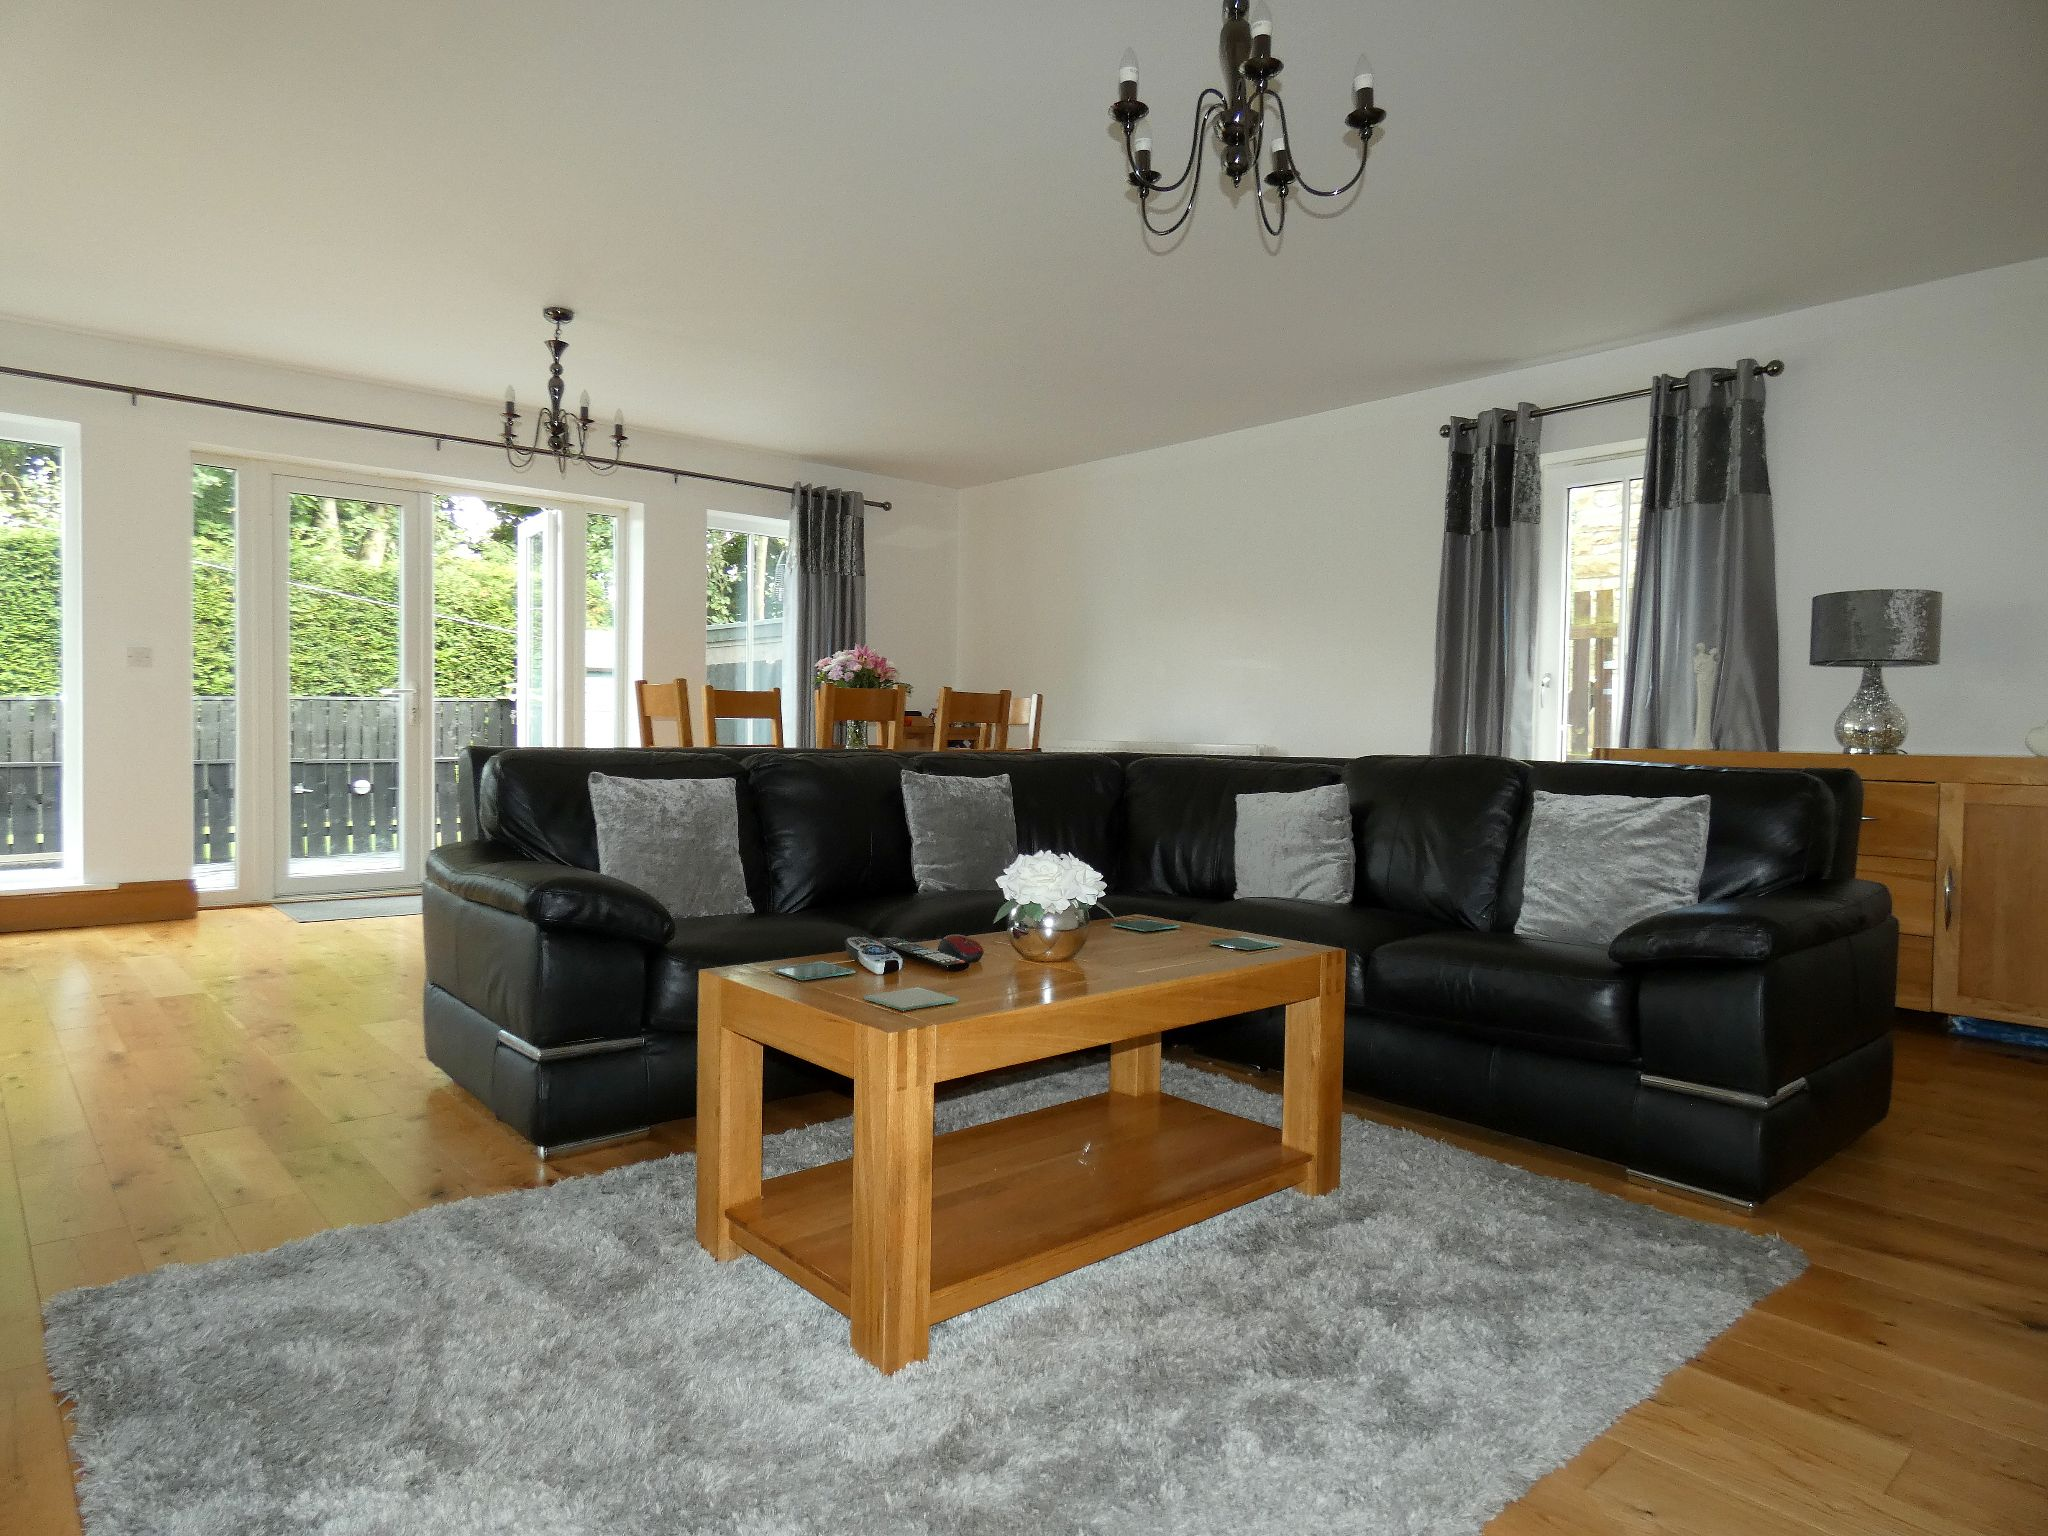 6 bedroom detached house For Sale in Bishop Auckland - Lounge.